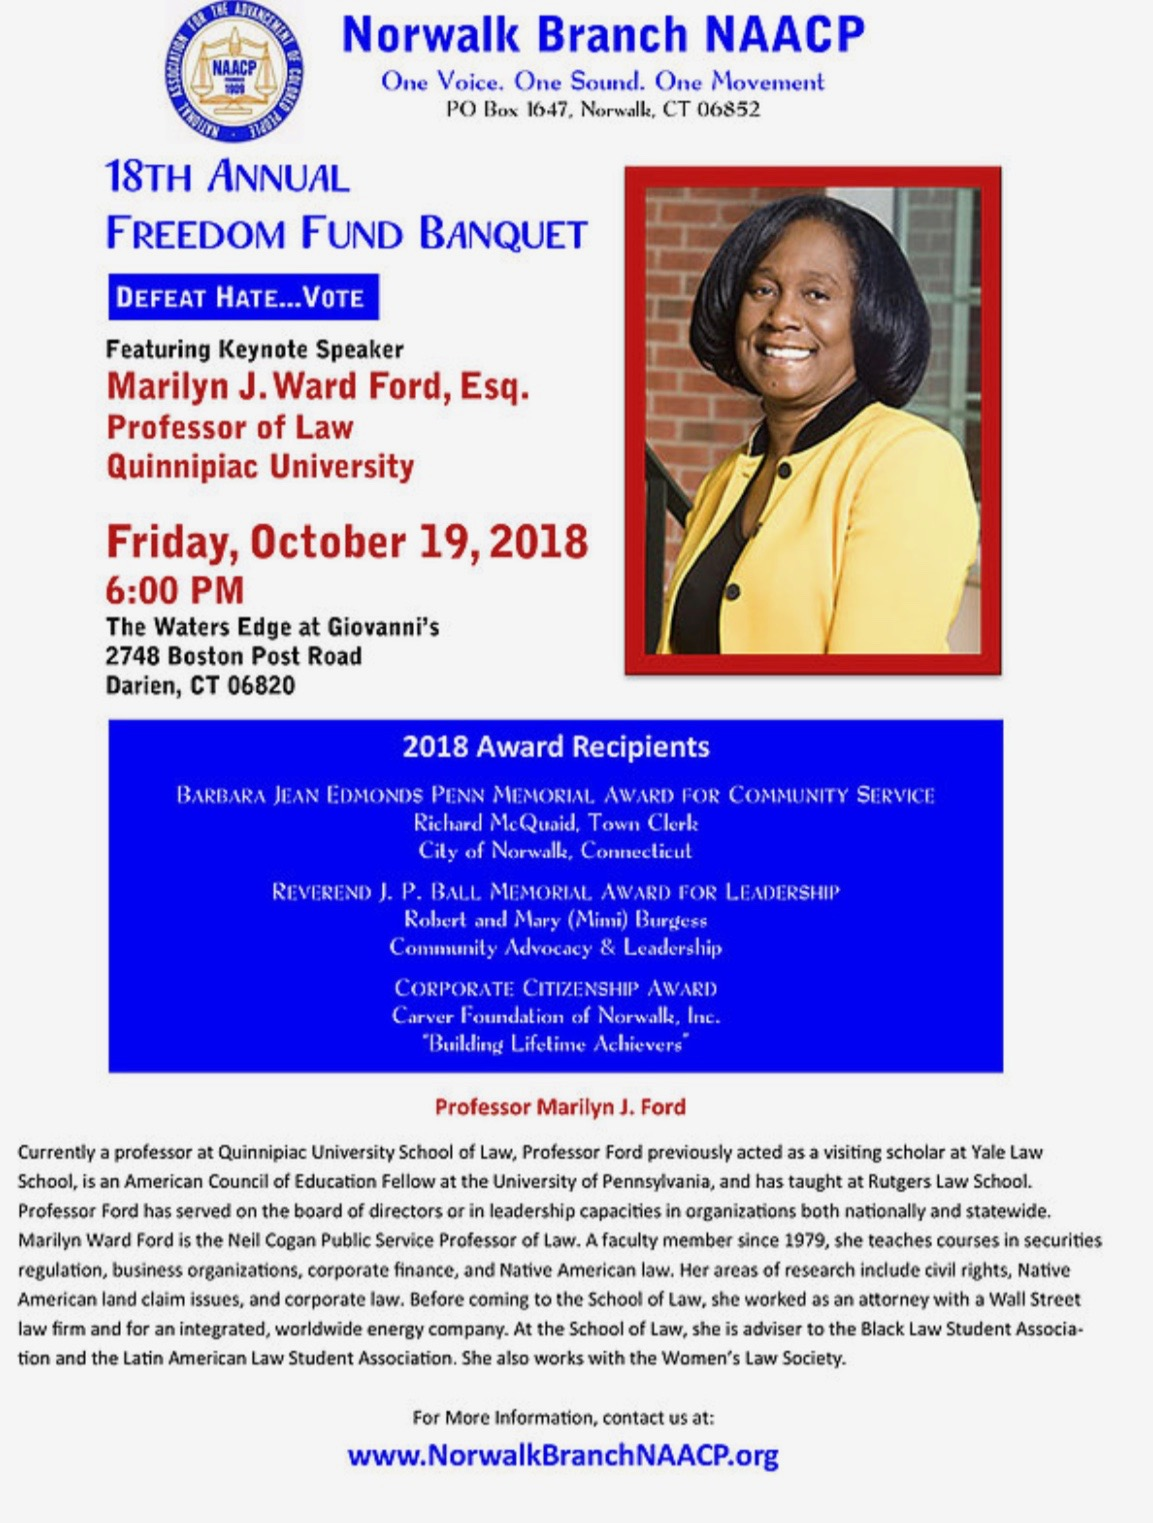 Carver to be honored by the Norwalk Branch NAACP on Friday, October